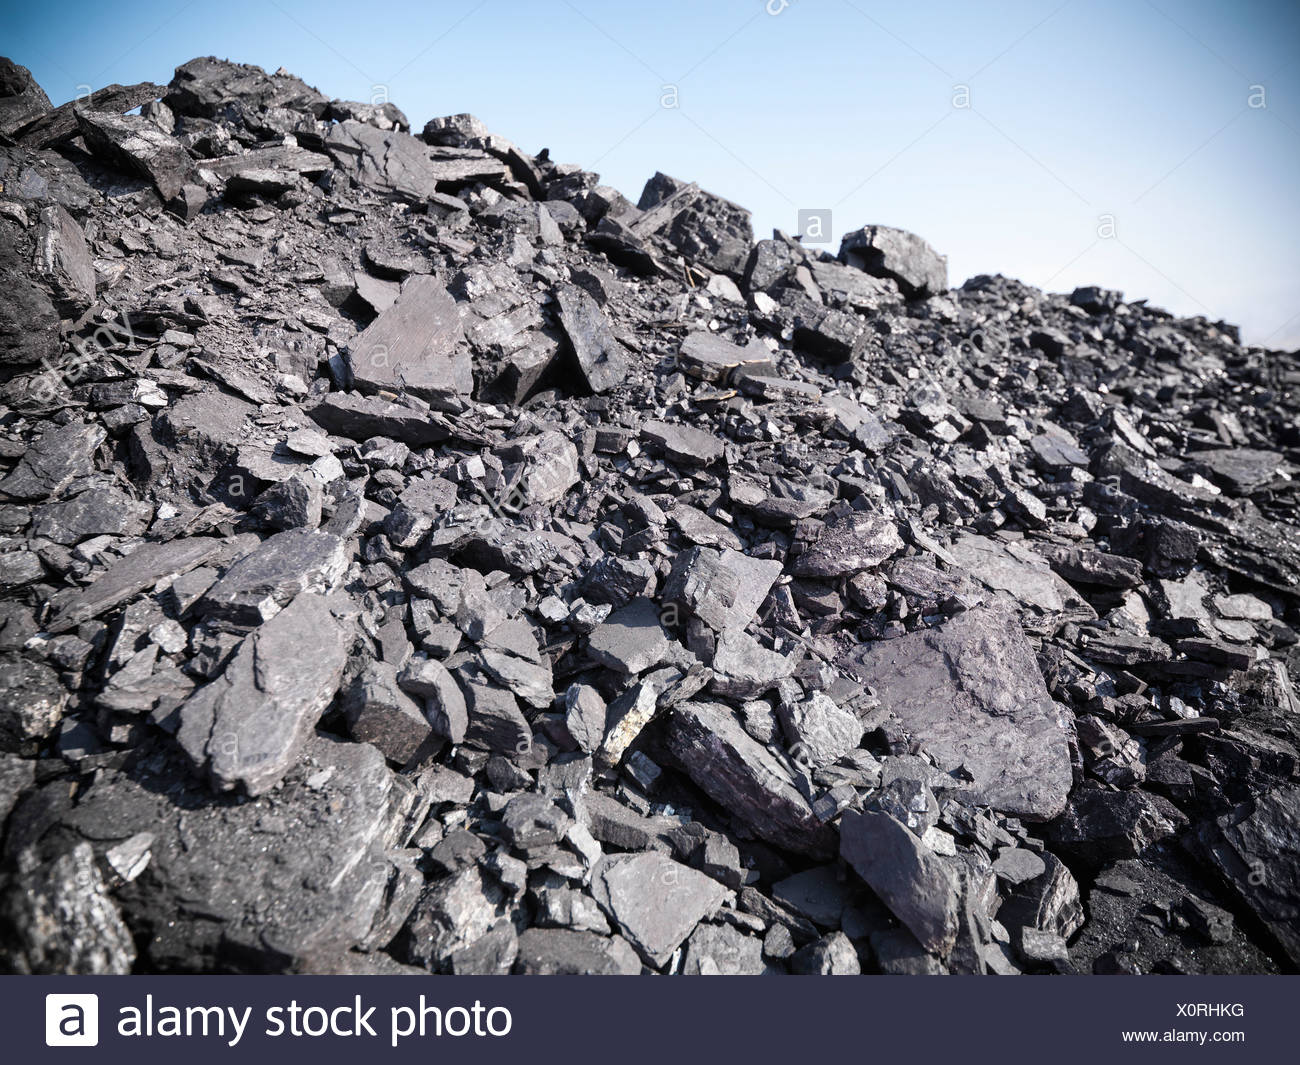 Piles of coal at mine - Stock Image